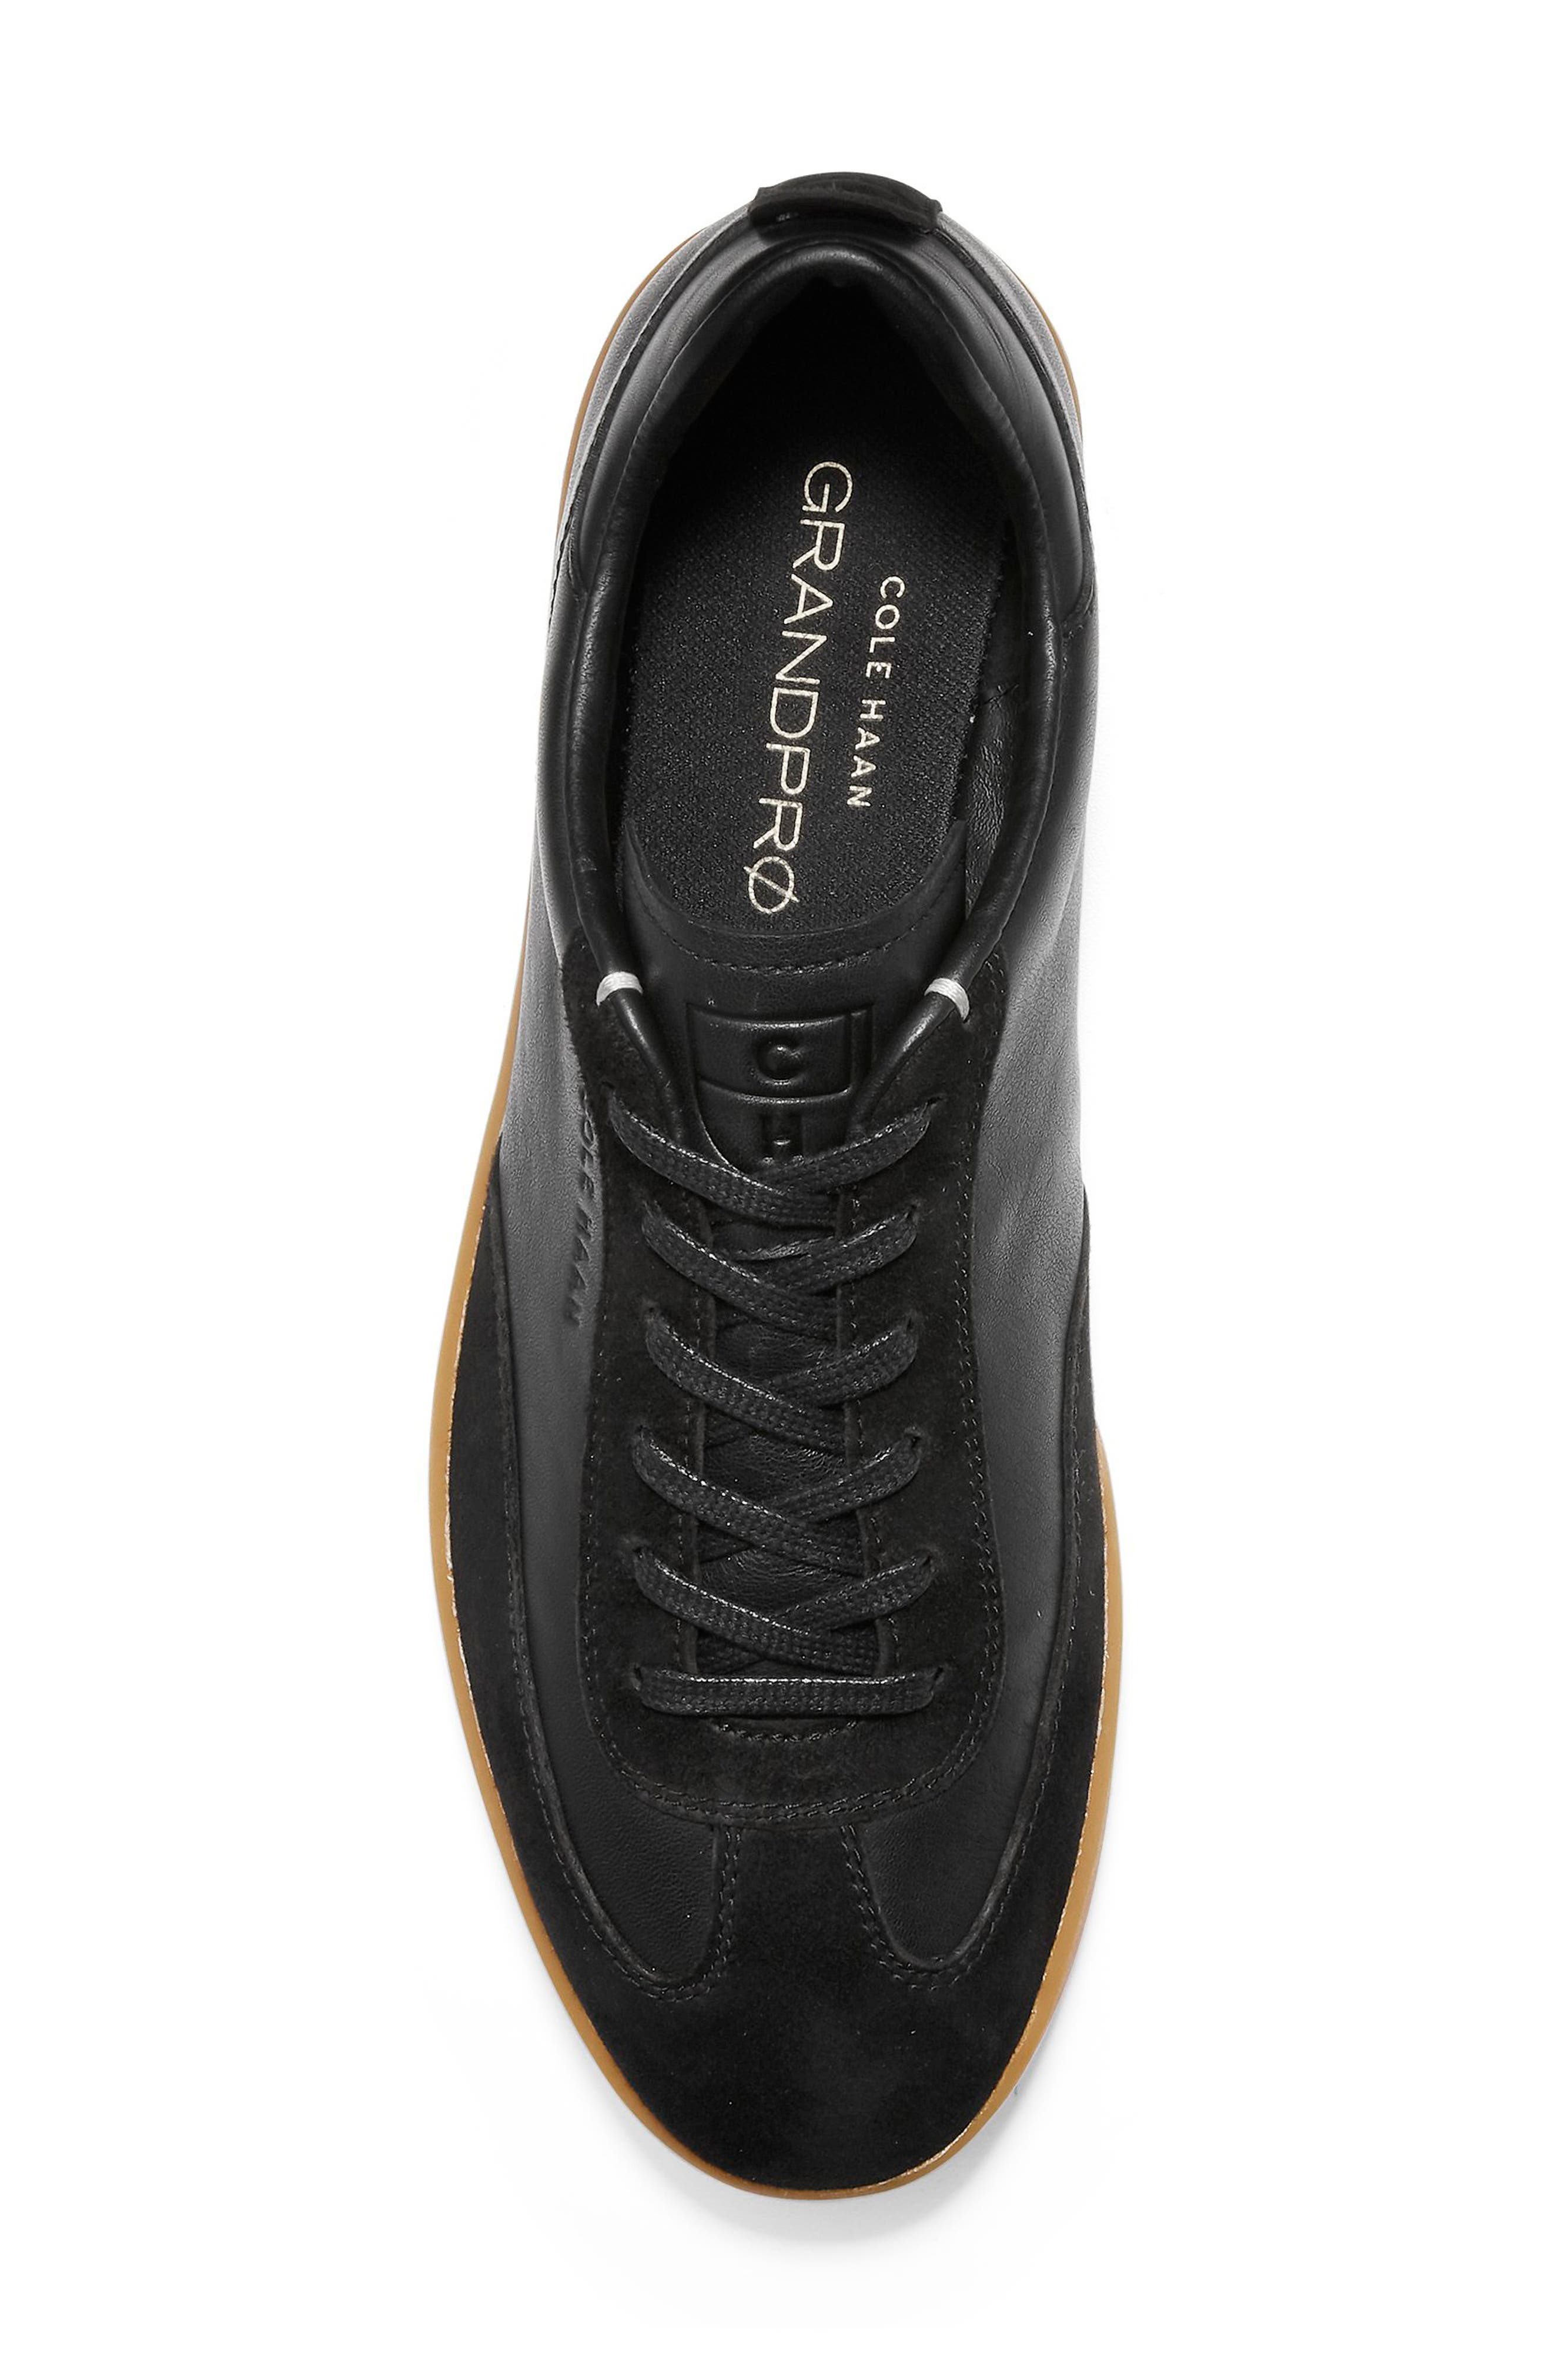 GrandPro Turf Sneaker,                             Alternate thumbnail 5, color,                             BLACK LEATHER/ SUEDE